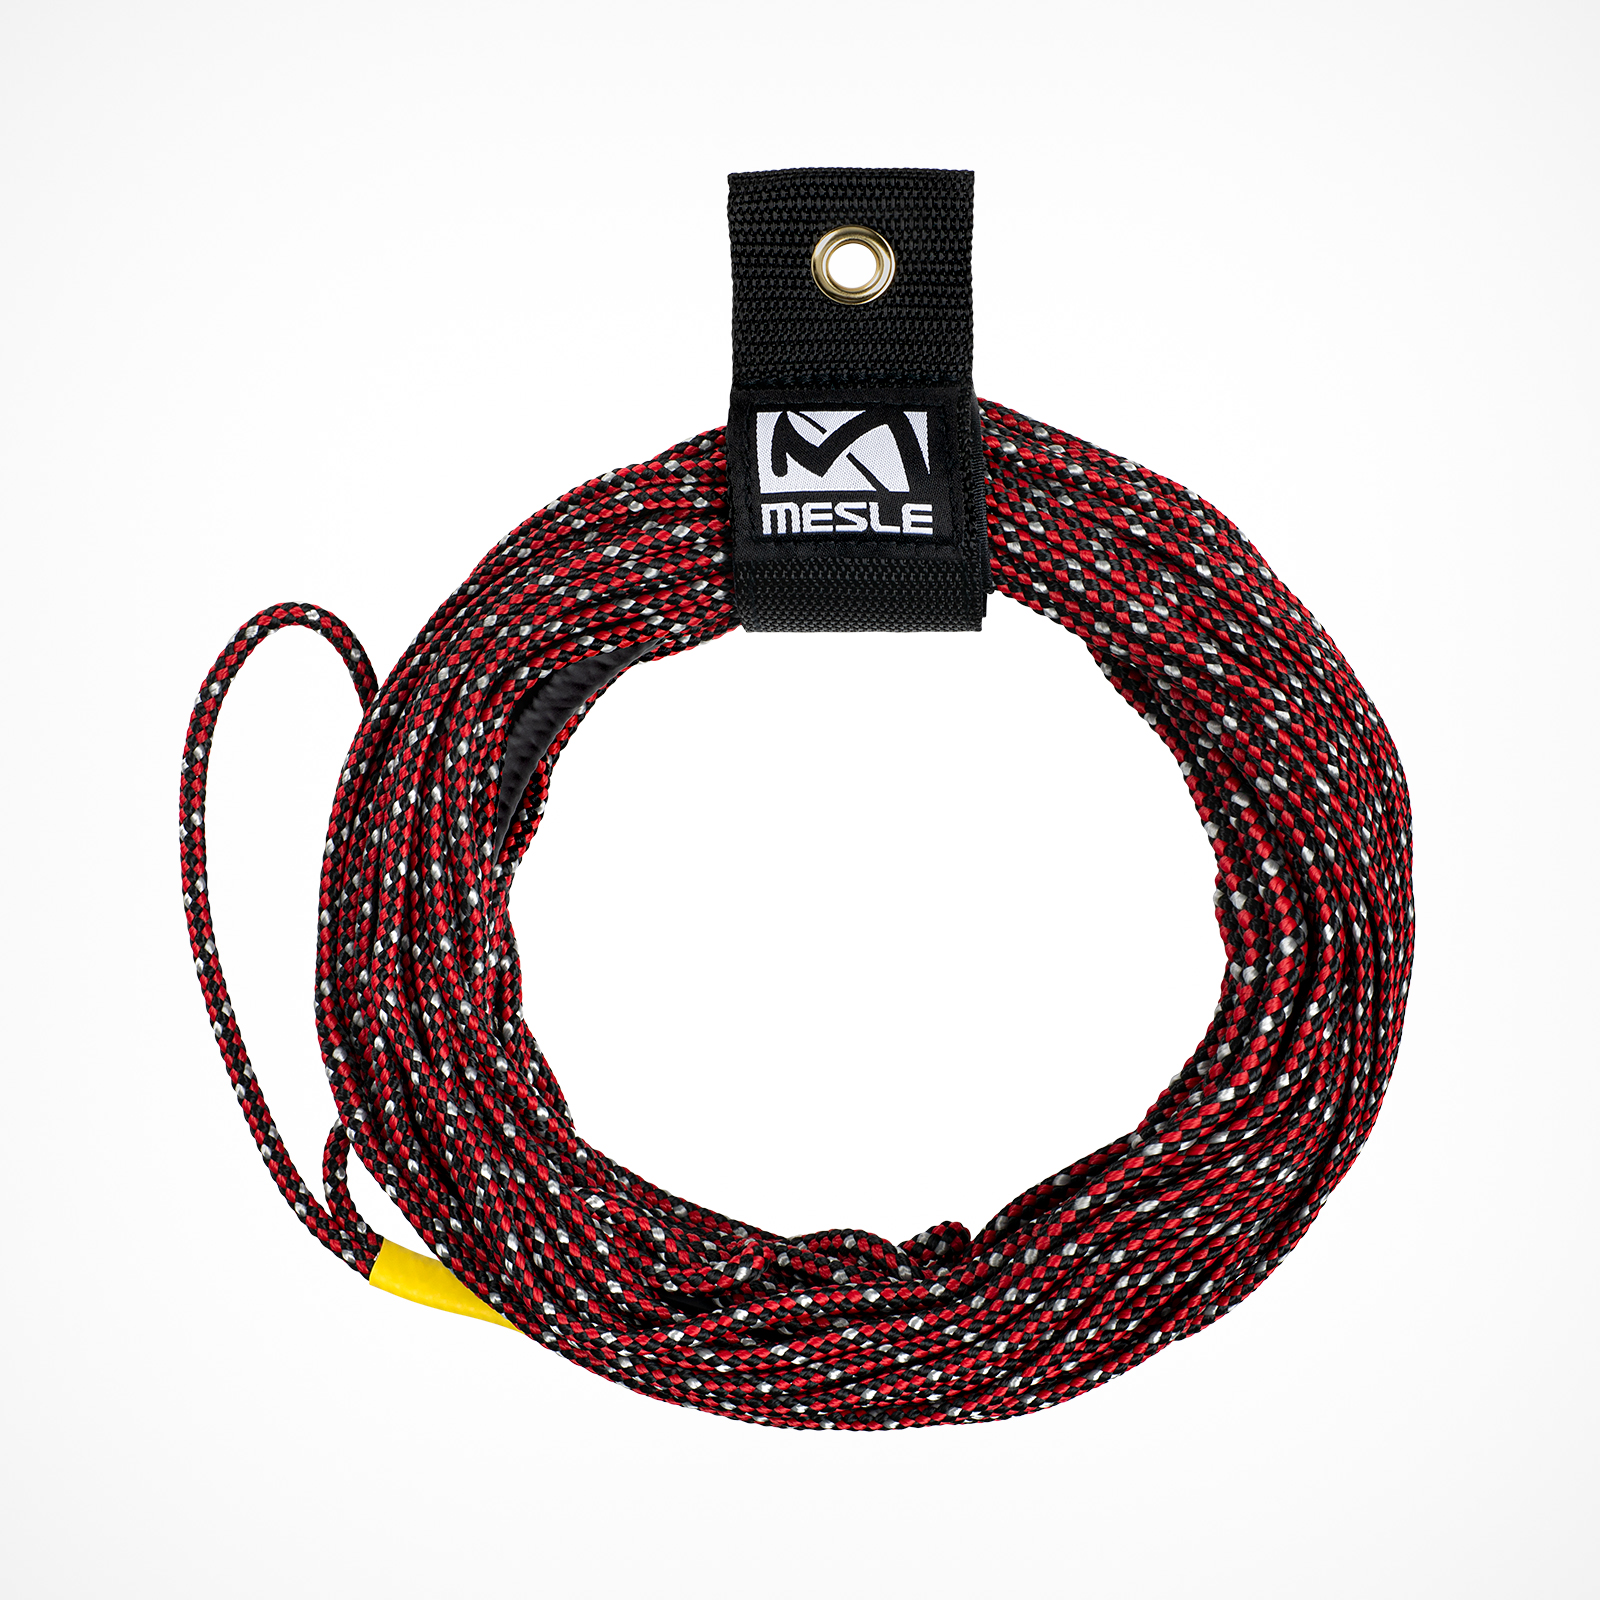 MESLE Wakeboard Rope SIX 65' in red and black, Non-Stretch Spectra Rope, Length 15.2 m - 19.8 m, 3 Sections, Dyneema Wakeboard-Rope, floating, inclusive Rope Keeper